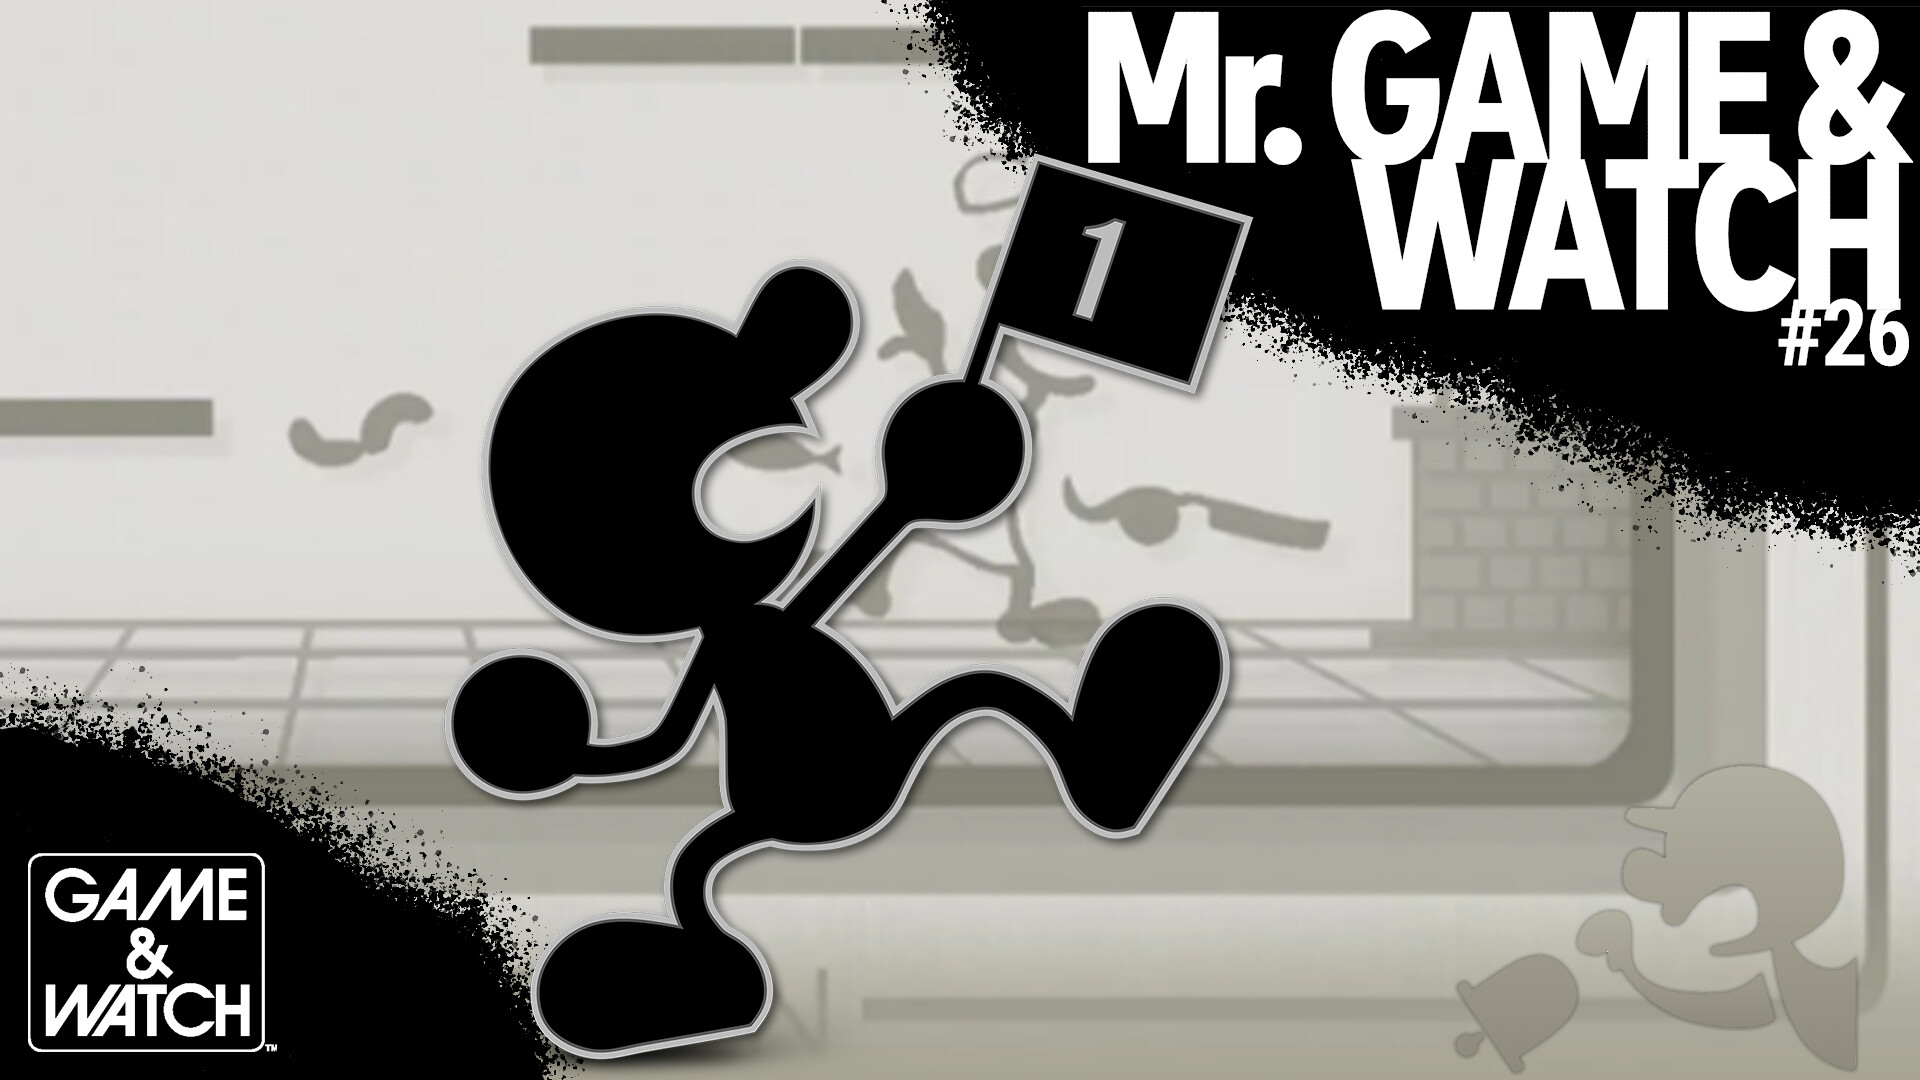 Christian Larson Ssbu Fanmade Wallpaper 26 Mr Game And Watch